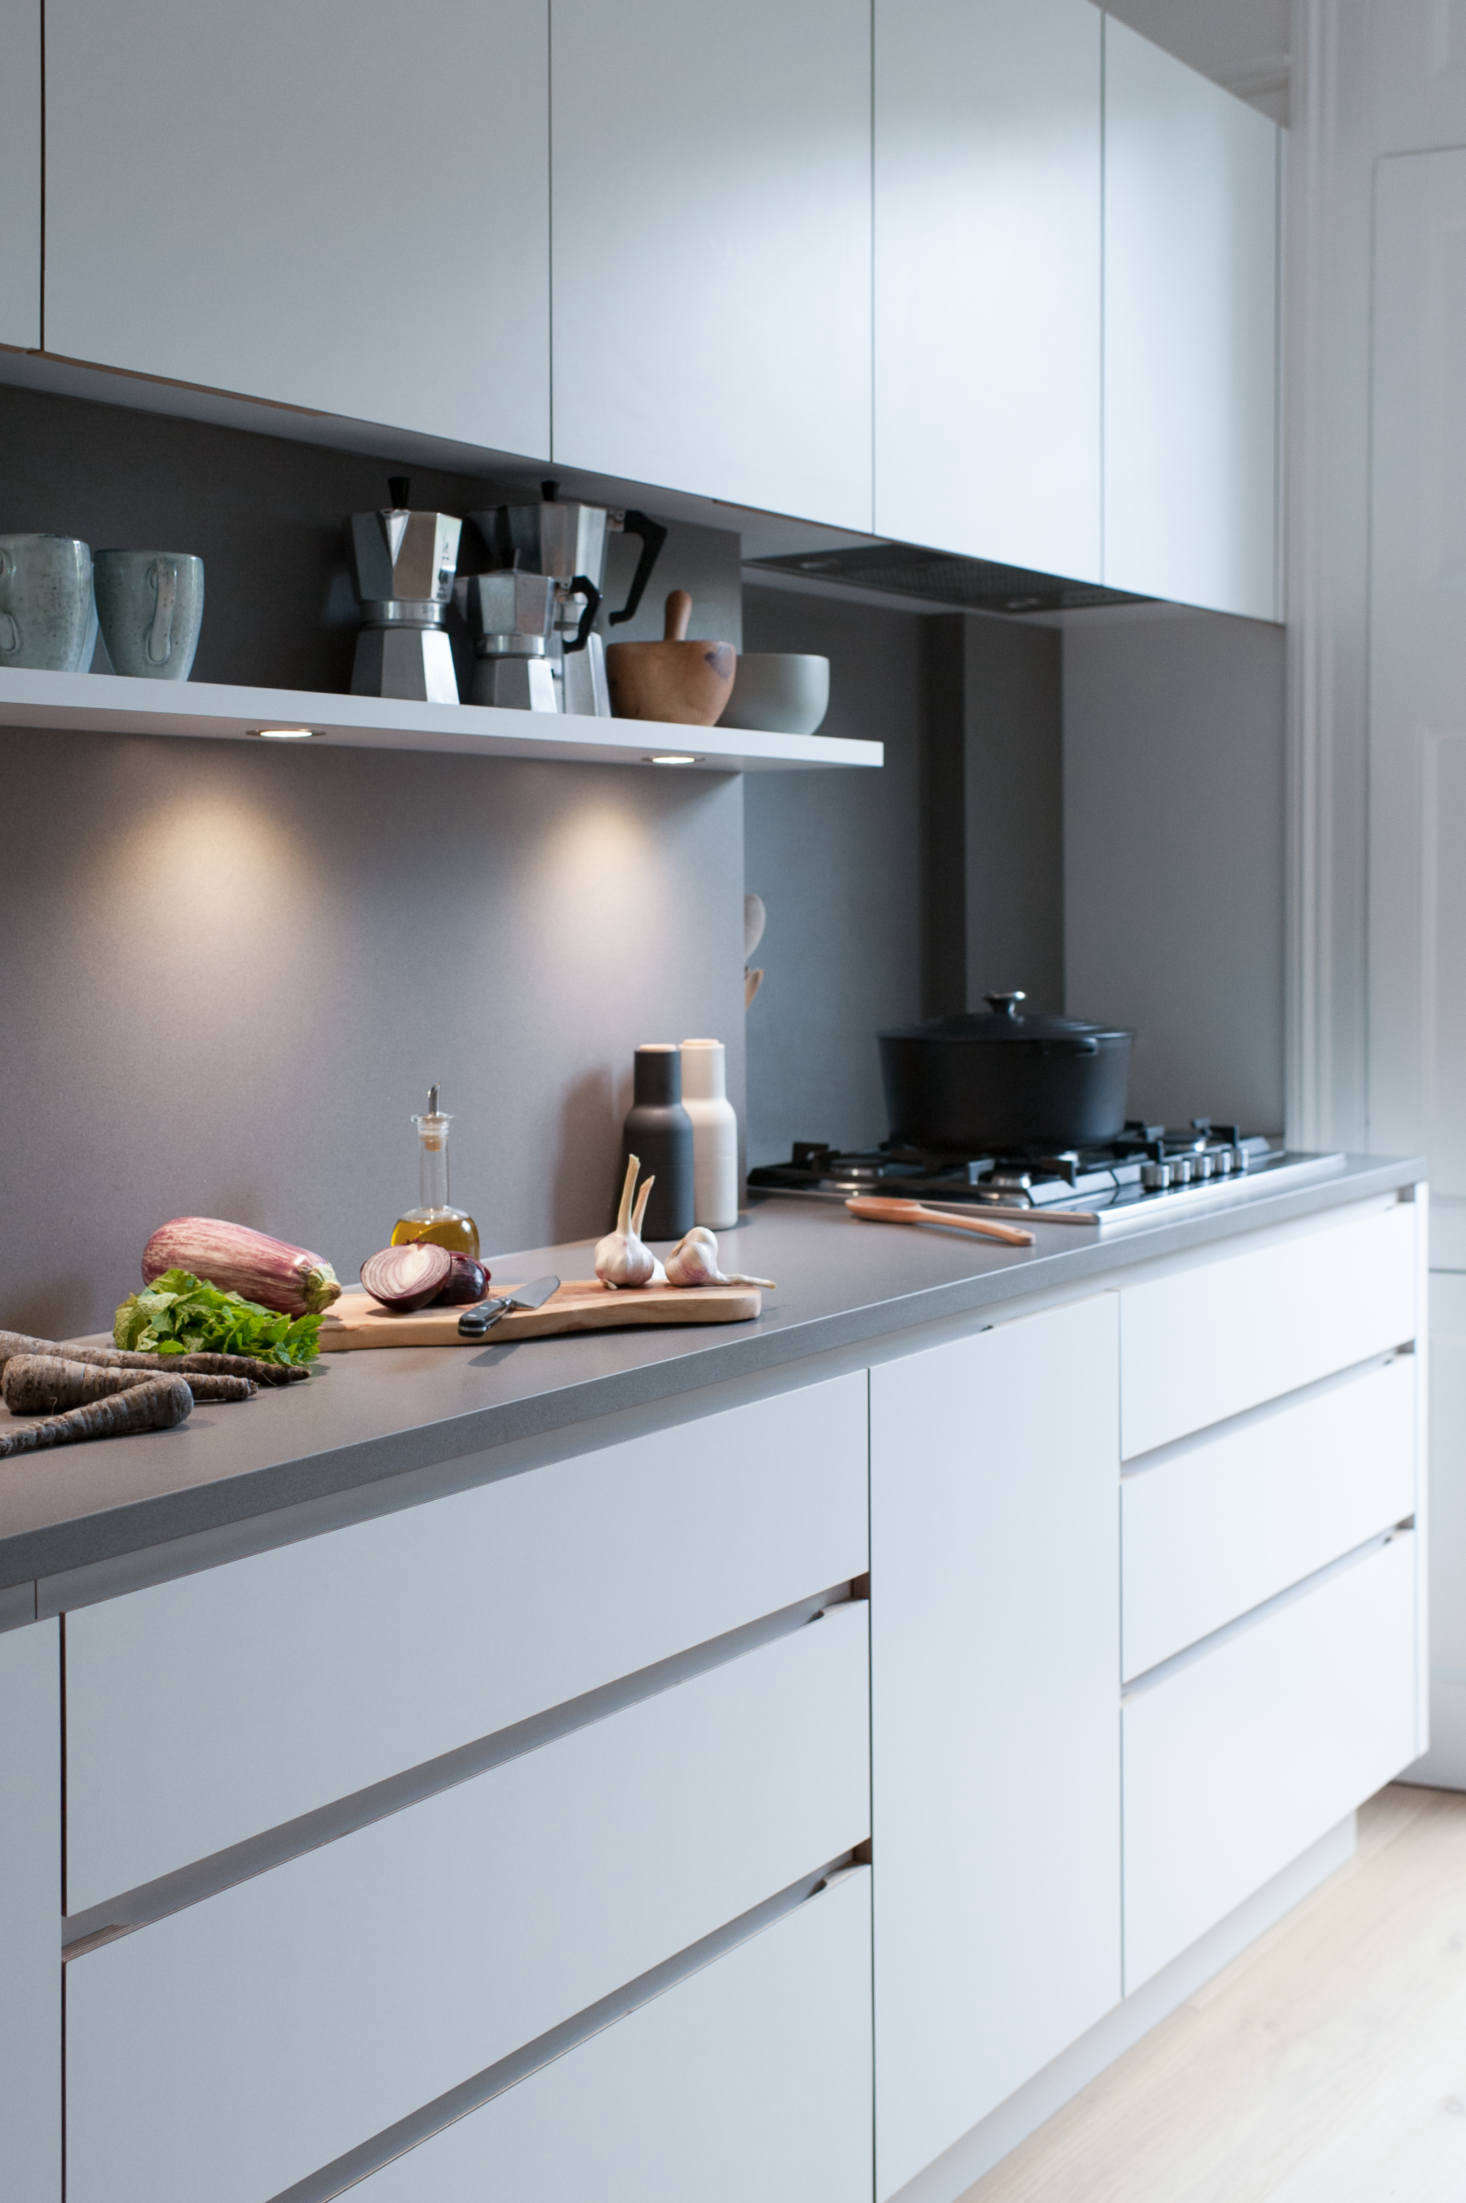 The counters are Silestone in Gris Expo, as are the backsplashes (with a suede finish). The five-burner cooktop is by Siemens and the under-cabinet extractor is the Weston Cache 700. Note the integrated under-shelf lighting. For tips on recessed lighting, read Expert Advice from Architect Oliver Freundlich.